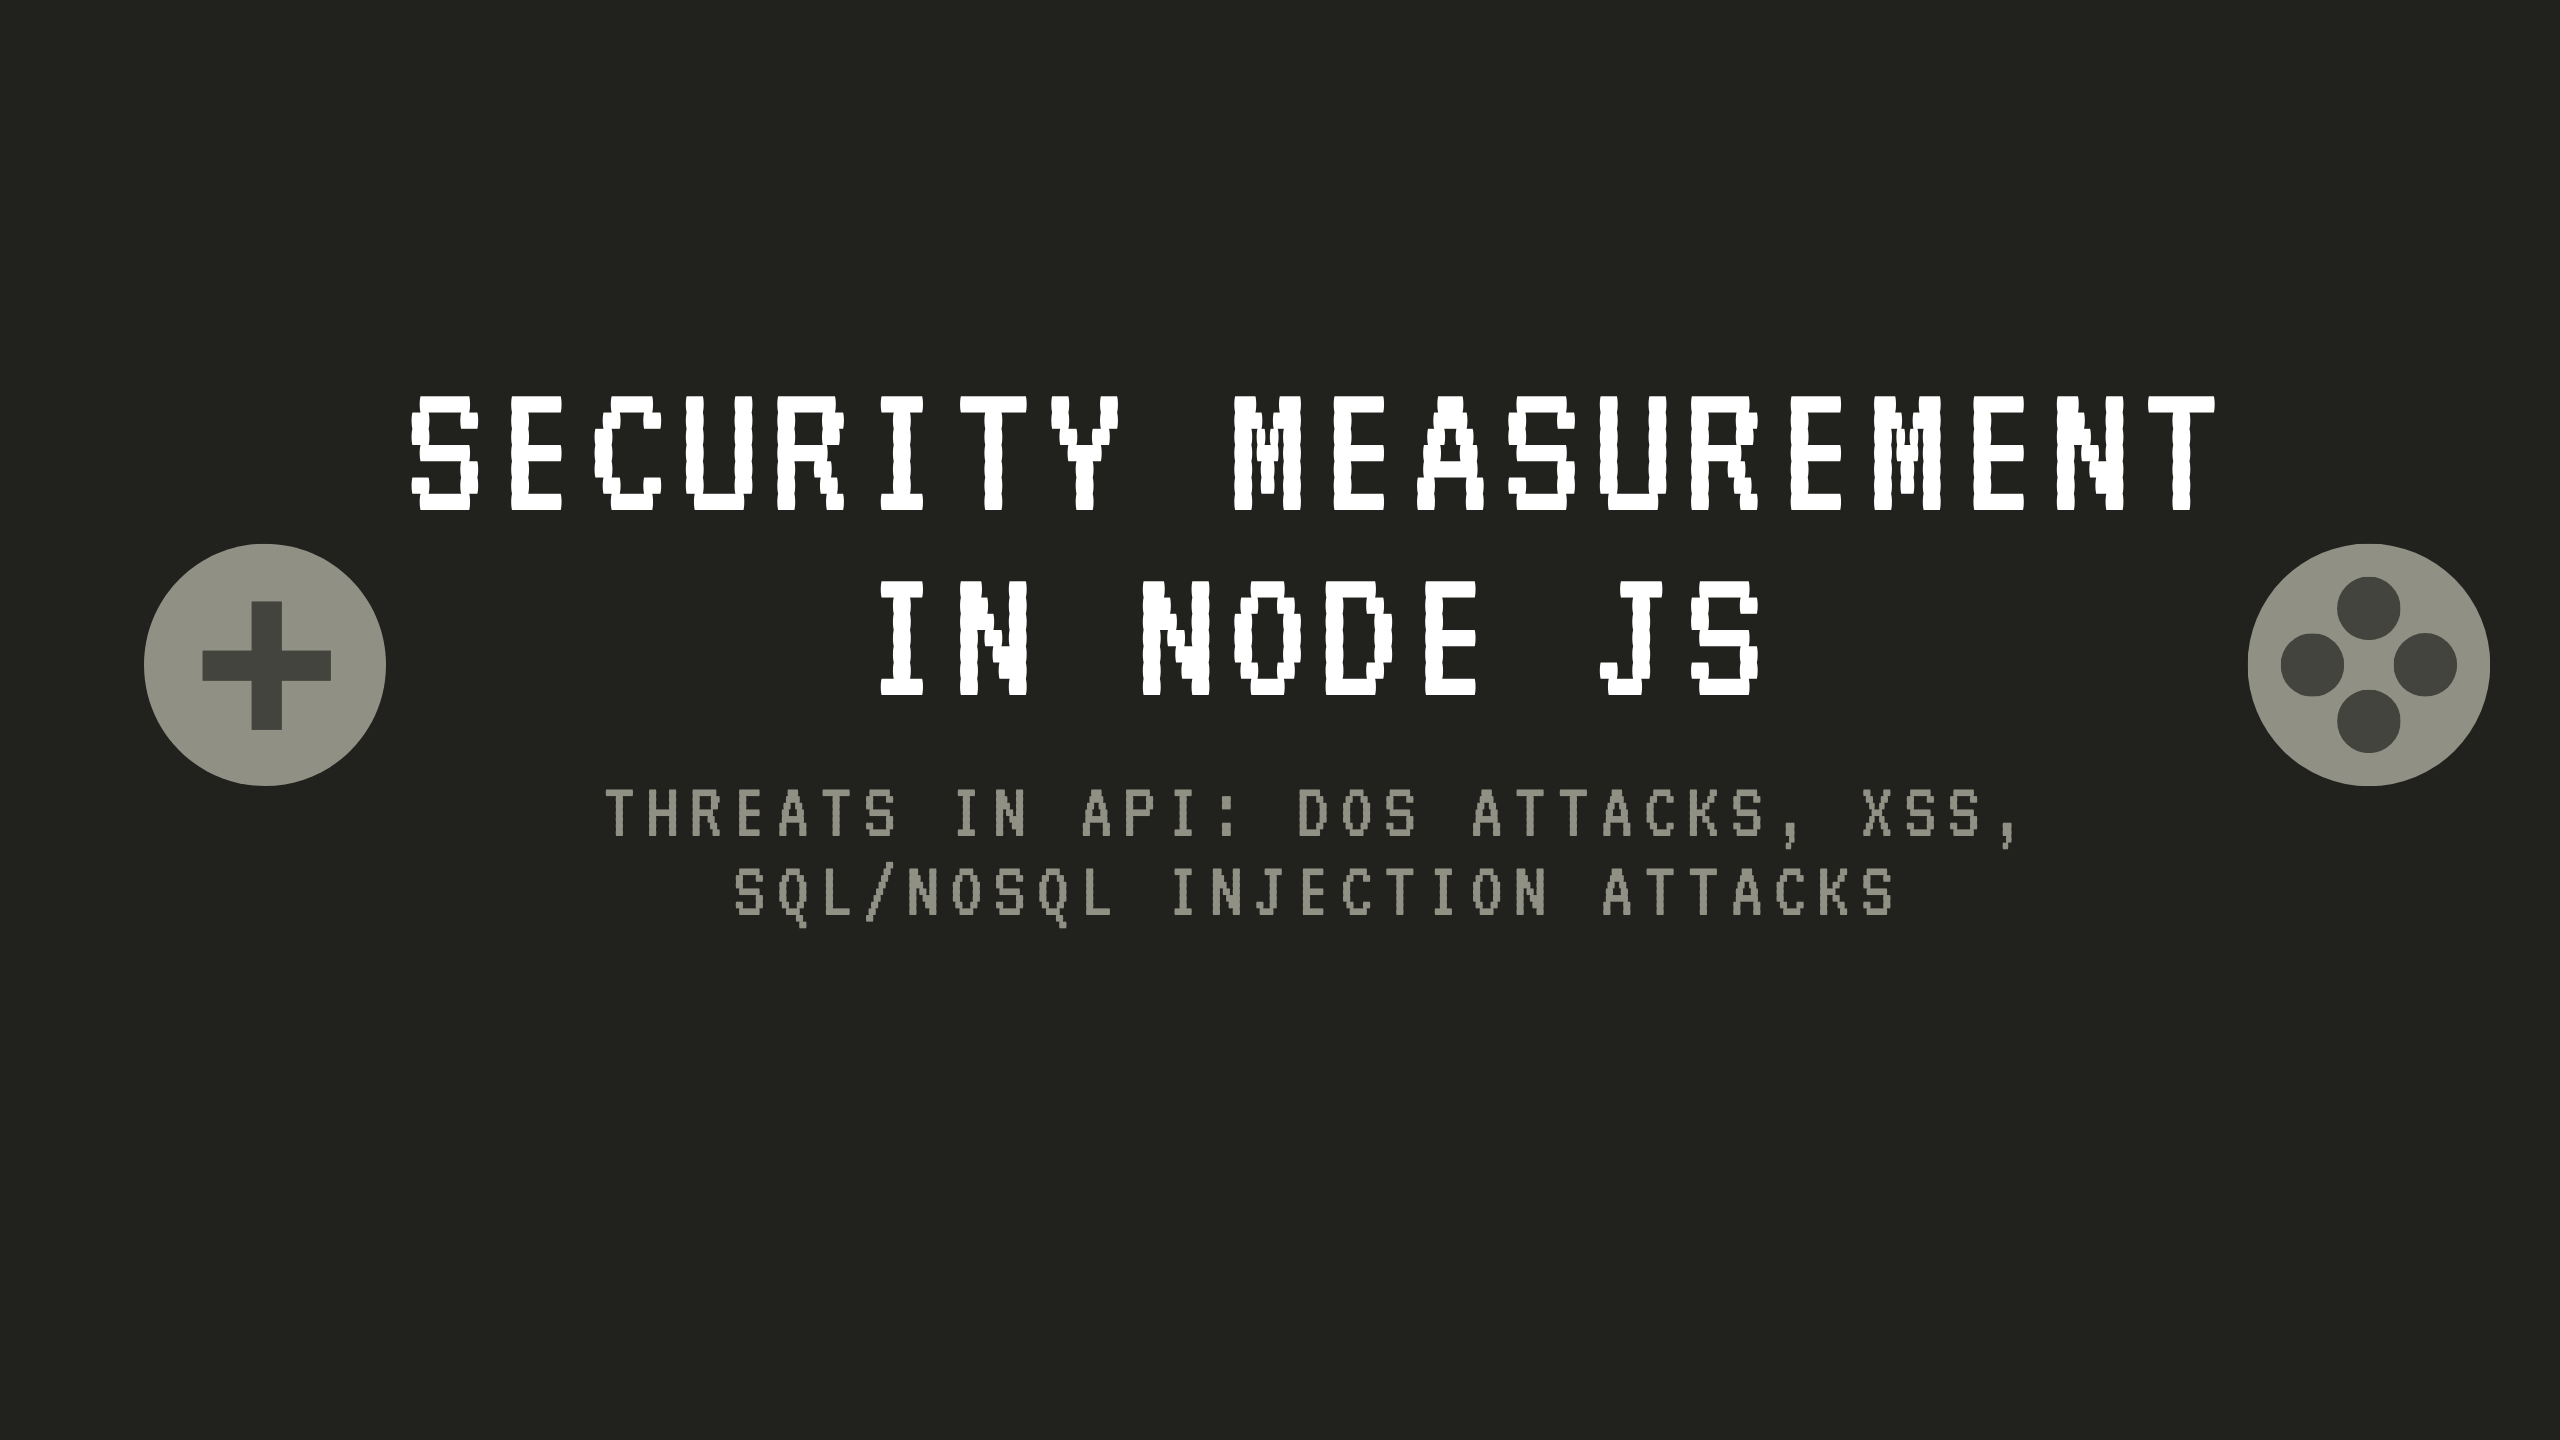 Security Measurement in Node js